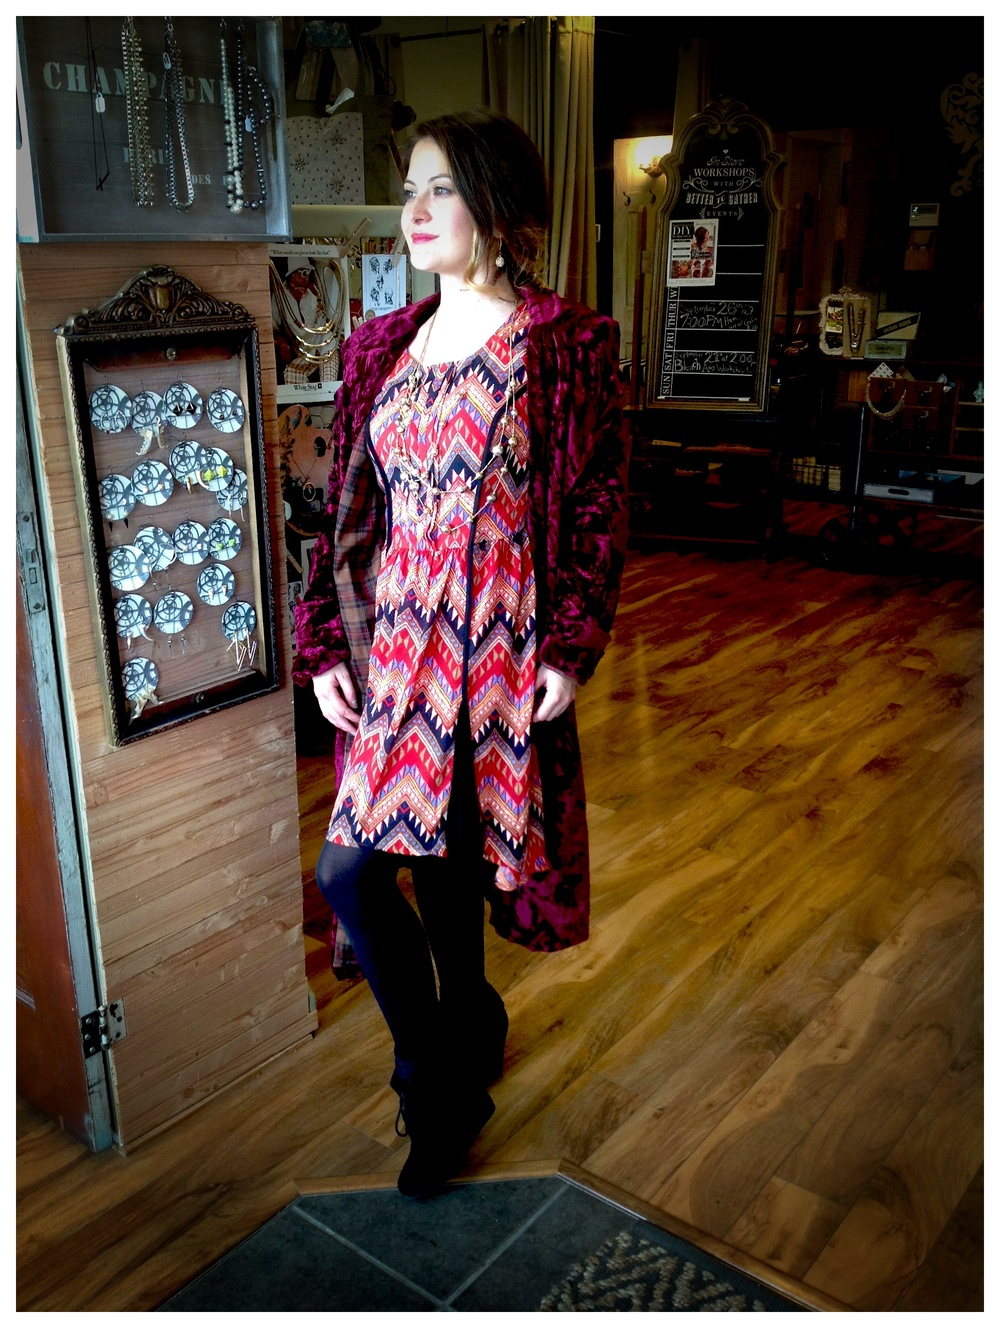 Here's Cassie showing off some of our new inventory! The dress and coat are both here at Better Together Boutique - but they won't be for long!